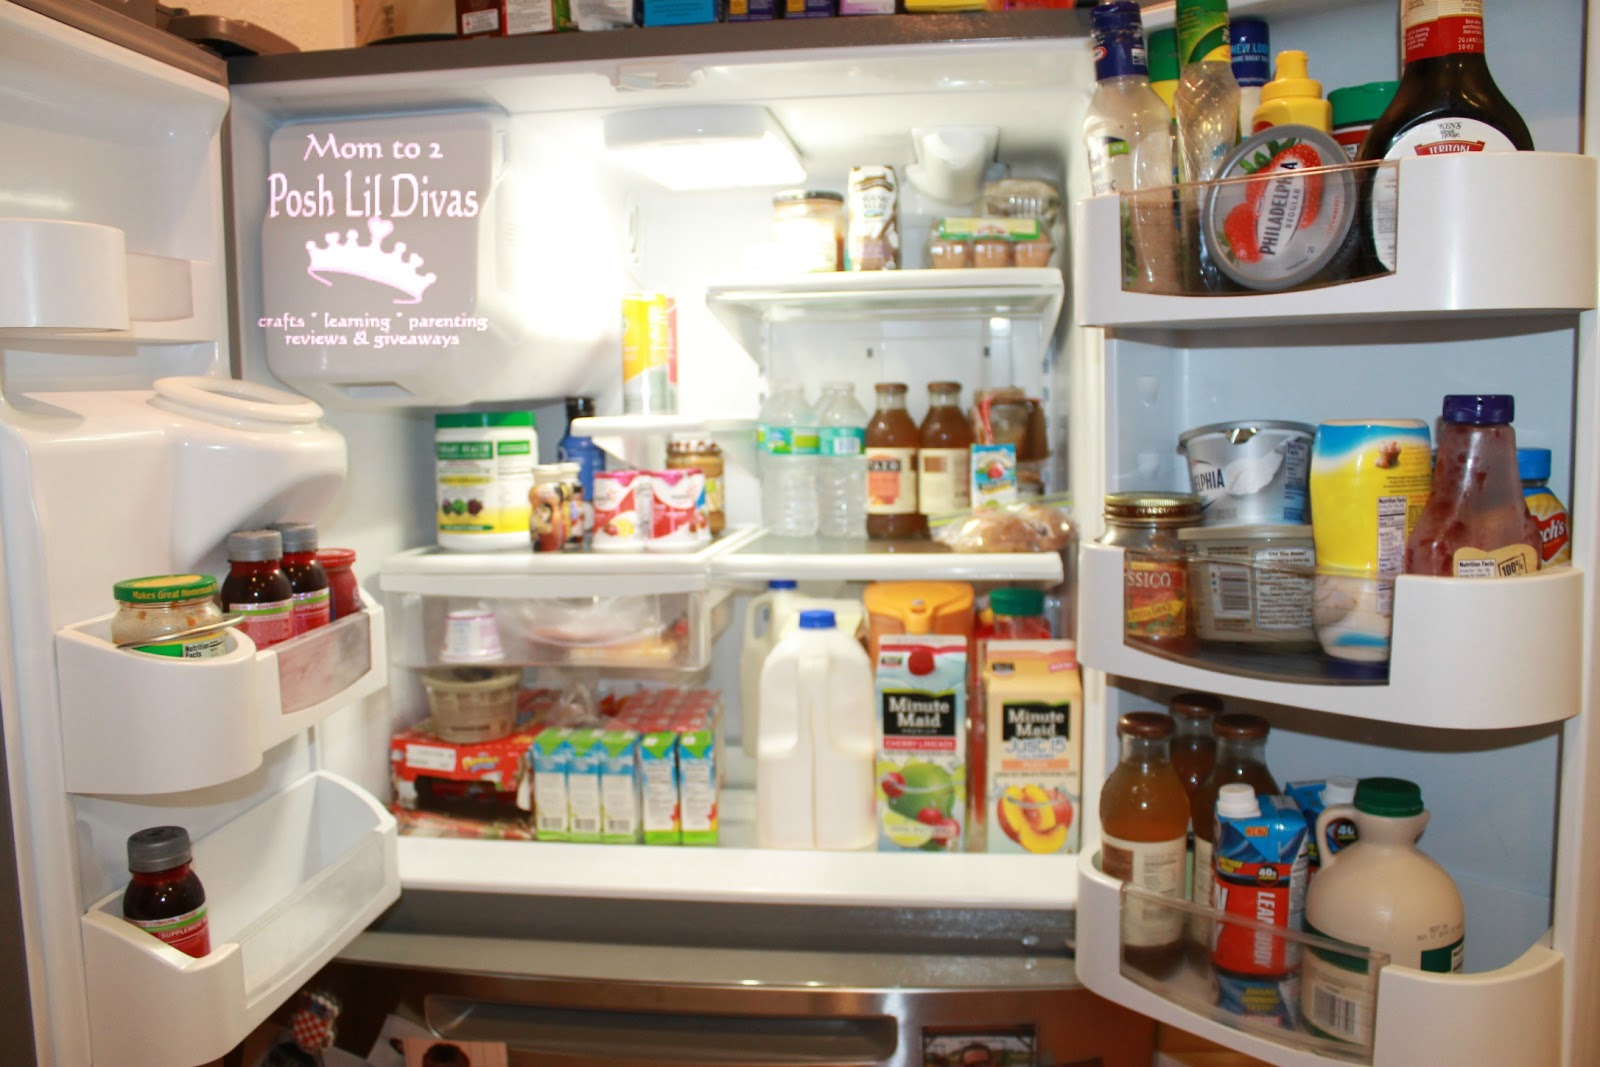 Maytag french door refrigerator reviews - Seriously Look At All Those Shelves And They Are Adjustable Too Swoon There S Even A Wine Bottle Holder Though Currently I See I Have Some Salsa In